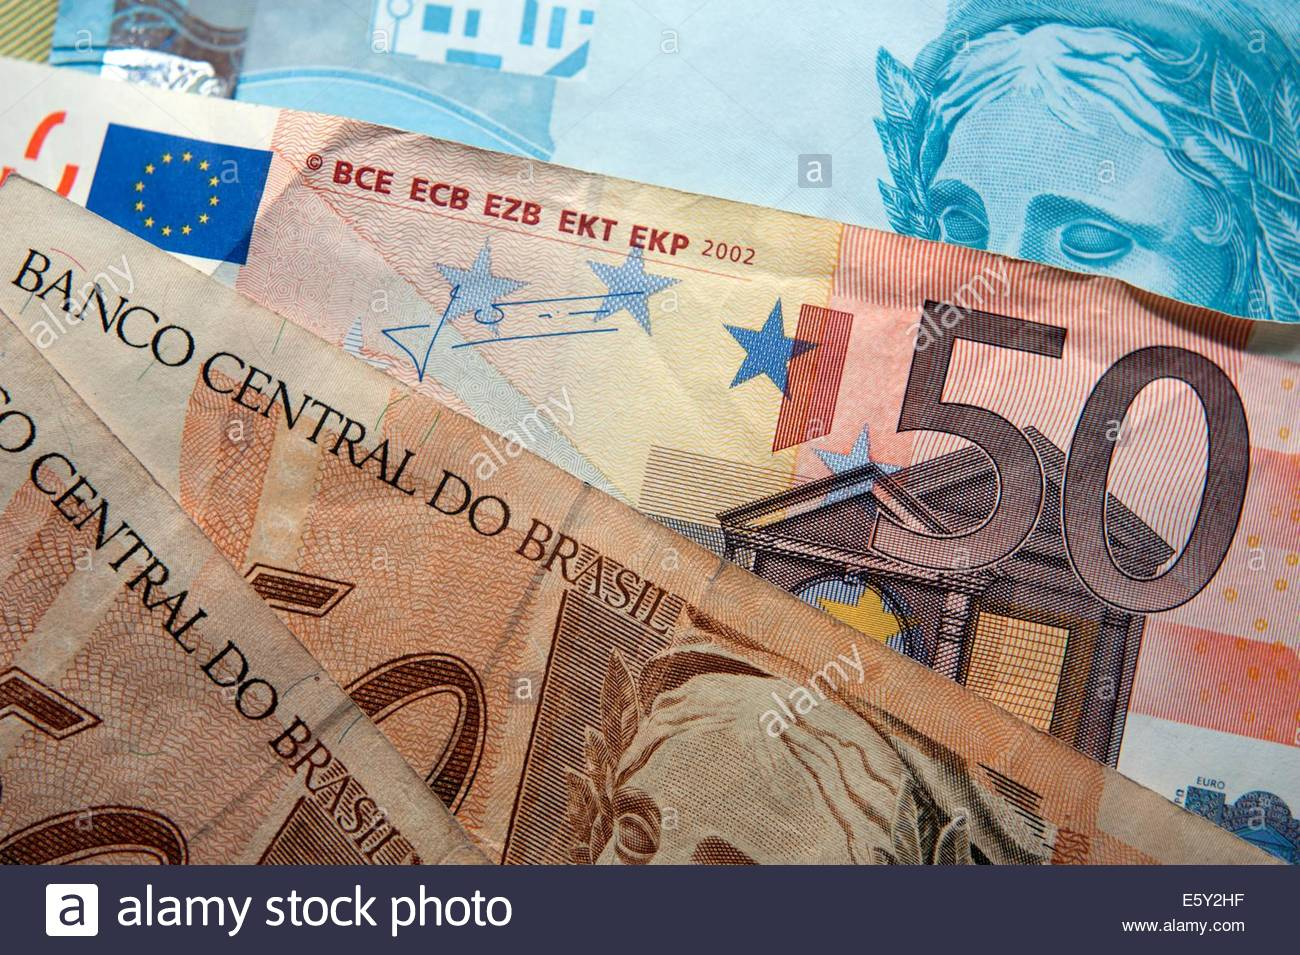 Brazilian Reals currency with Euro's. - Stock Image